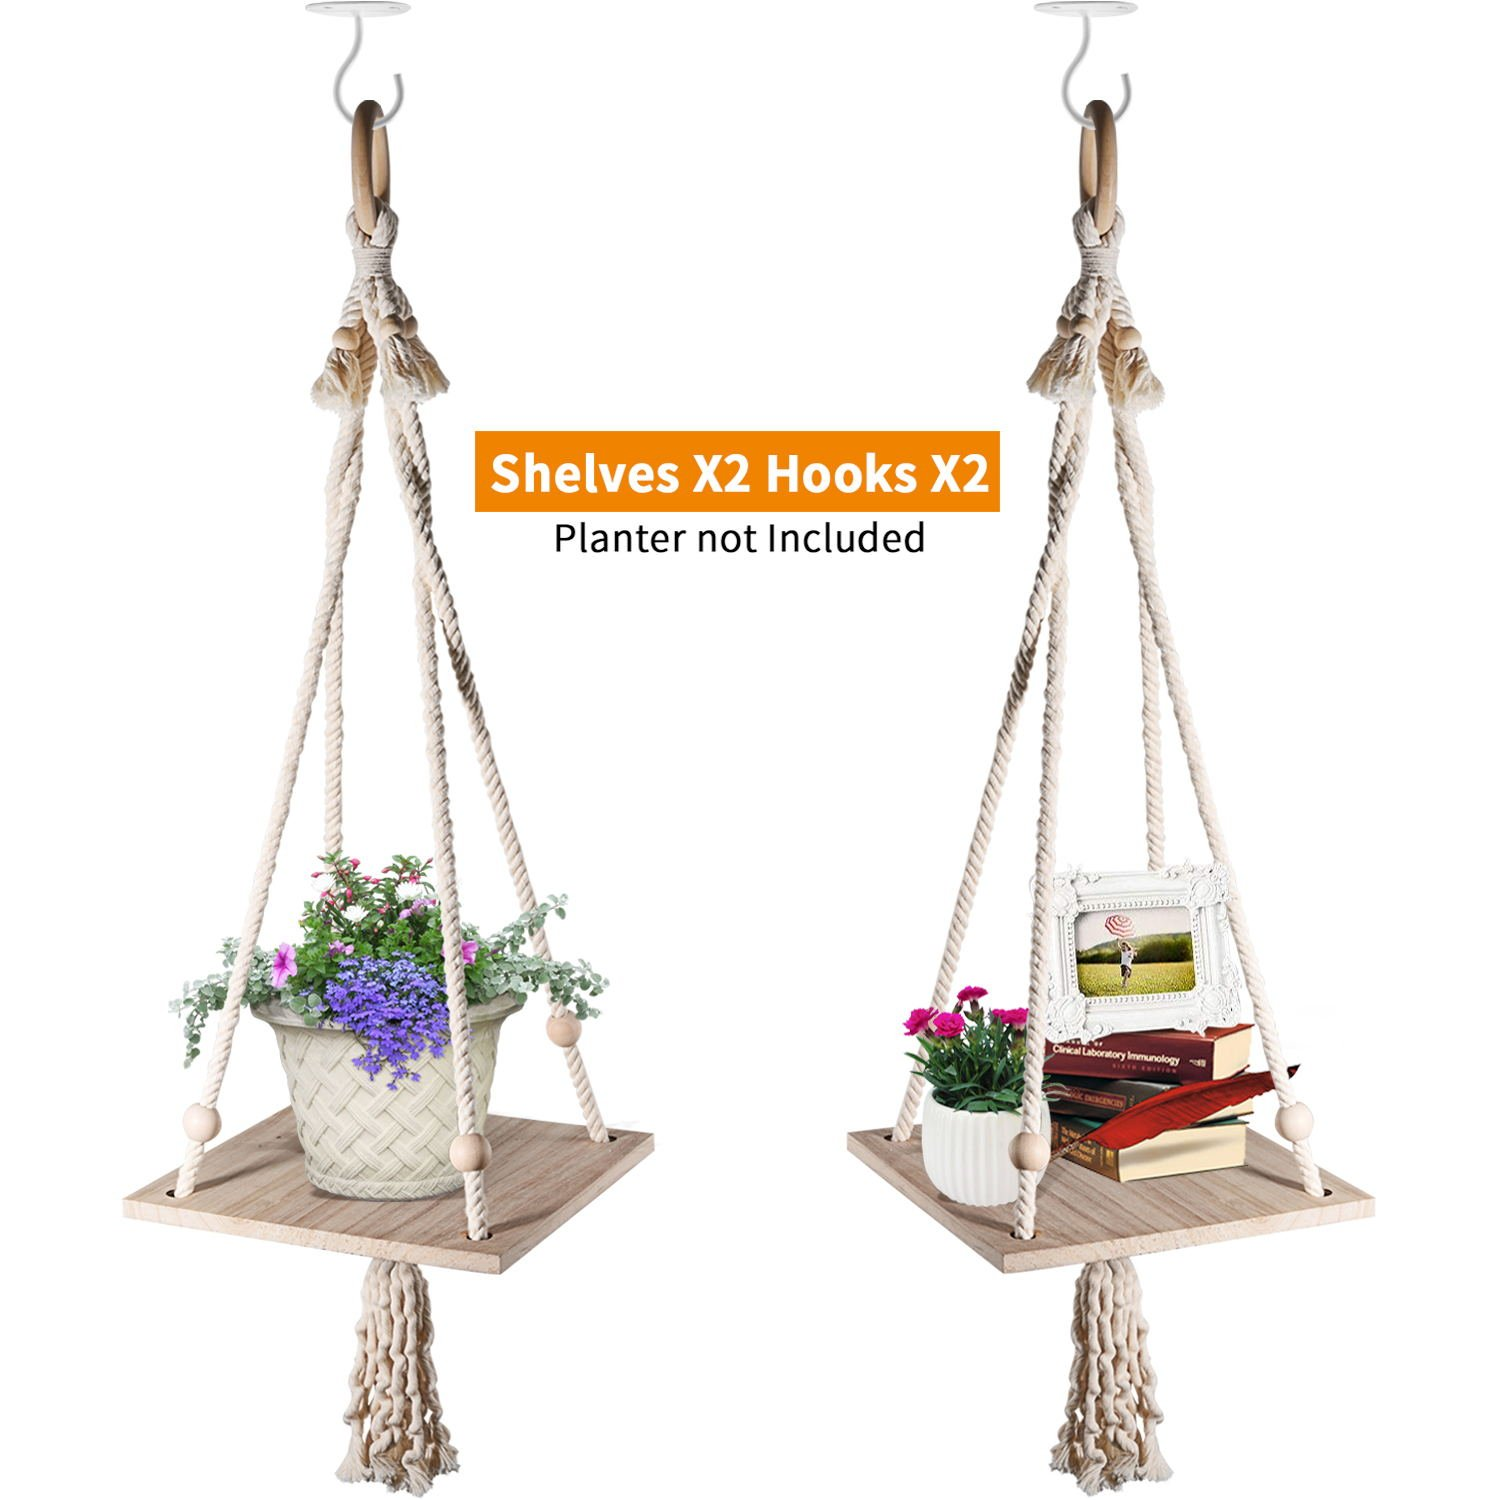 Macrame Hanging Planter Shelf Flower Pot Holder Succulent Plants Hanger with Wooden Plant Stand Indoor Outdoor Boho Home Decor 43 inches by Homenote(Pack of 2) by HomeNote